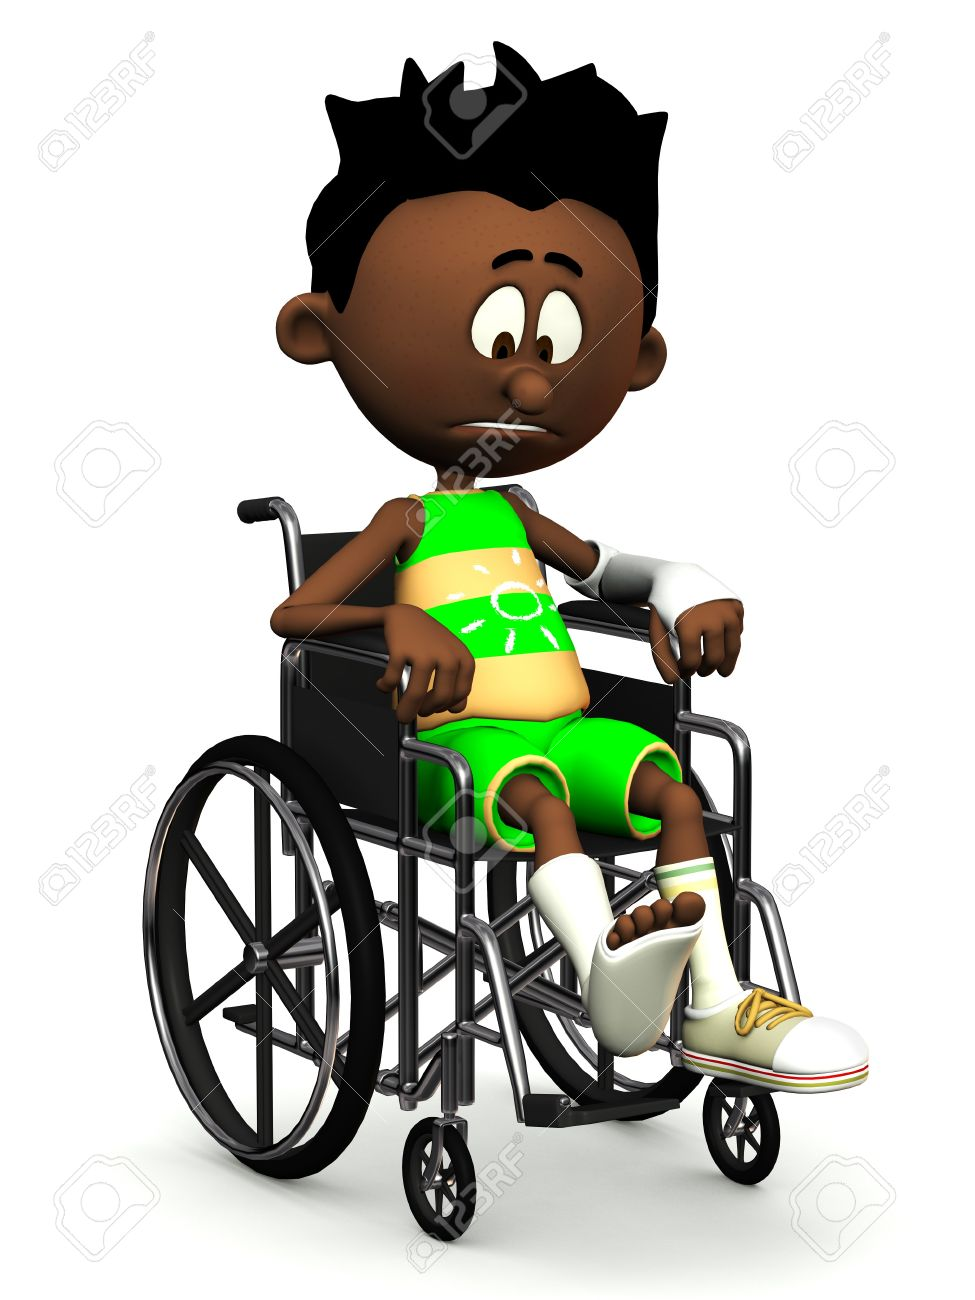 A black cartoon boy with a broken leg and arm sitting in a wheelchair. He is looking very sad. White background. Stock Photo - 9604388